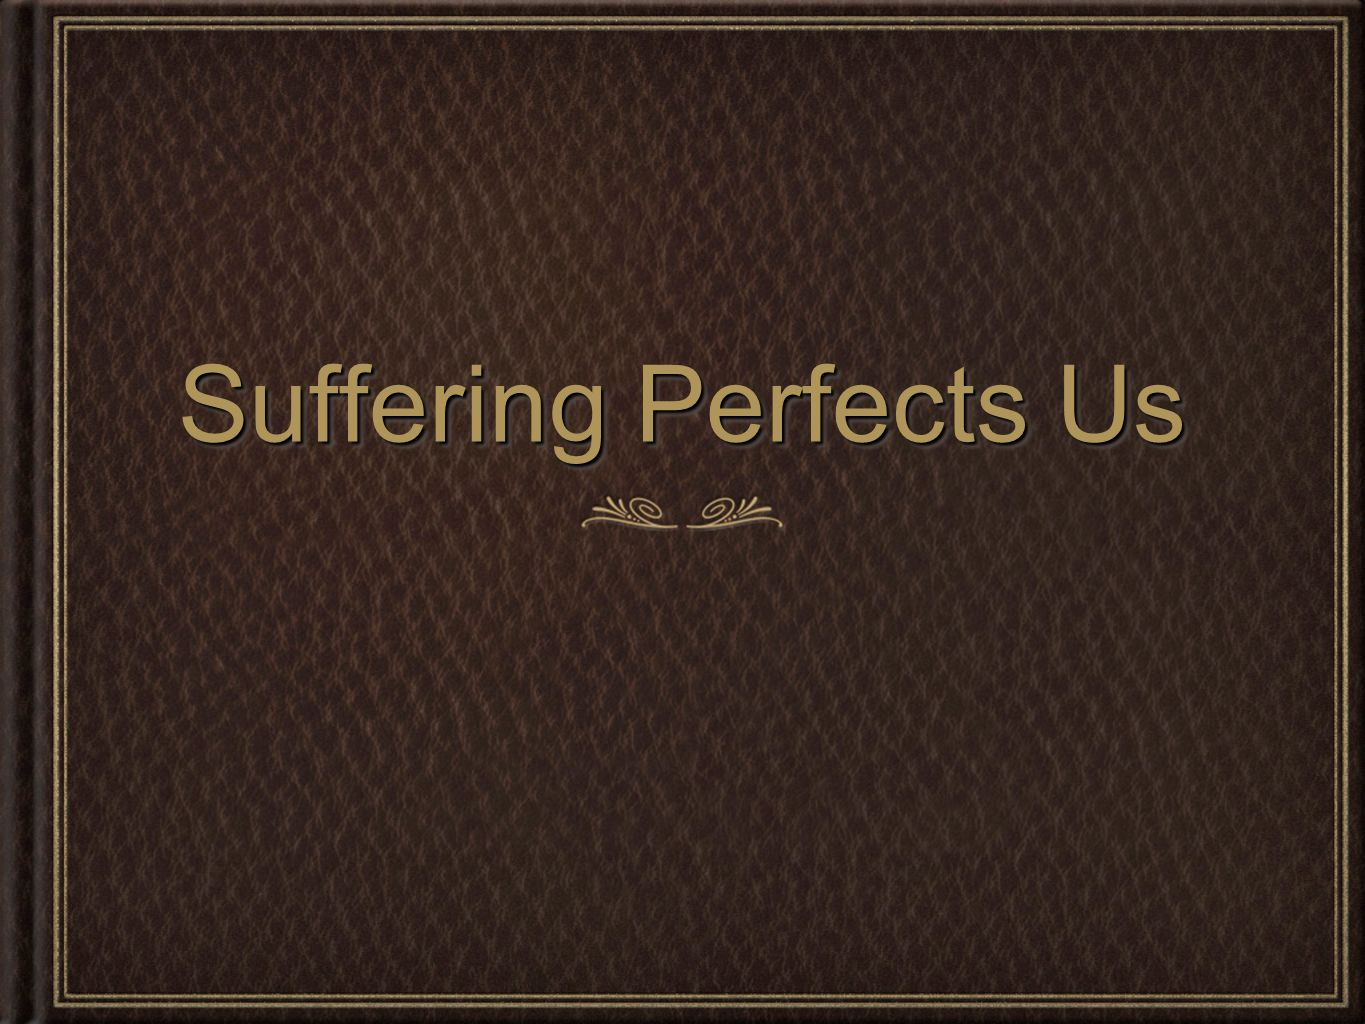 Suffering Perfects Us